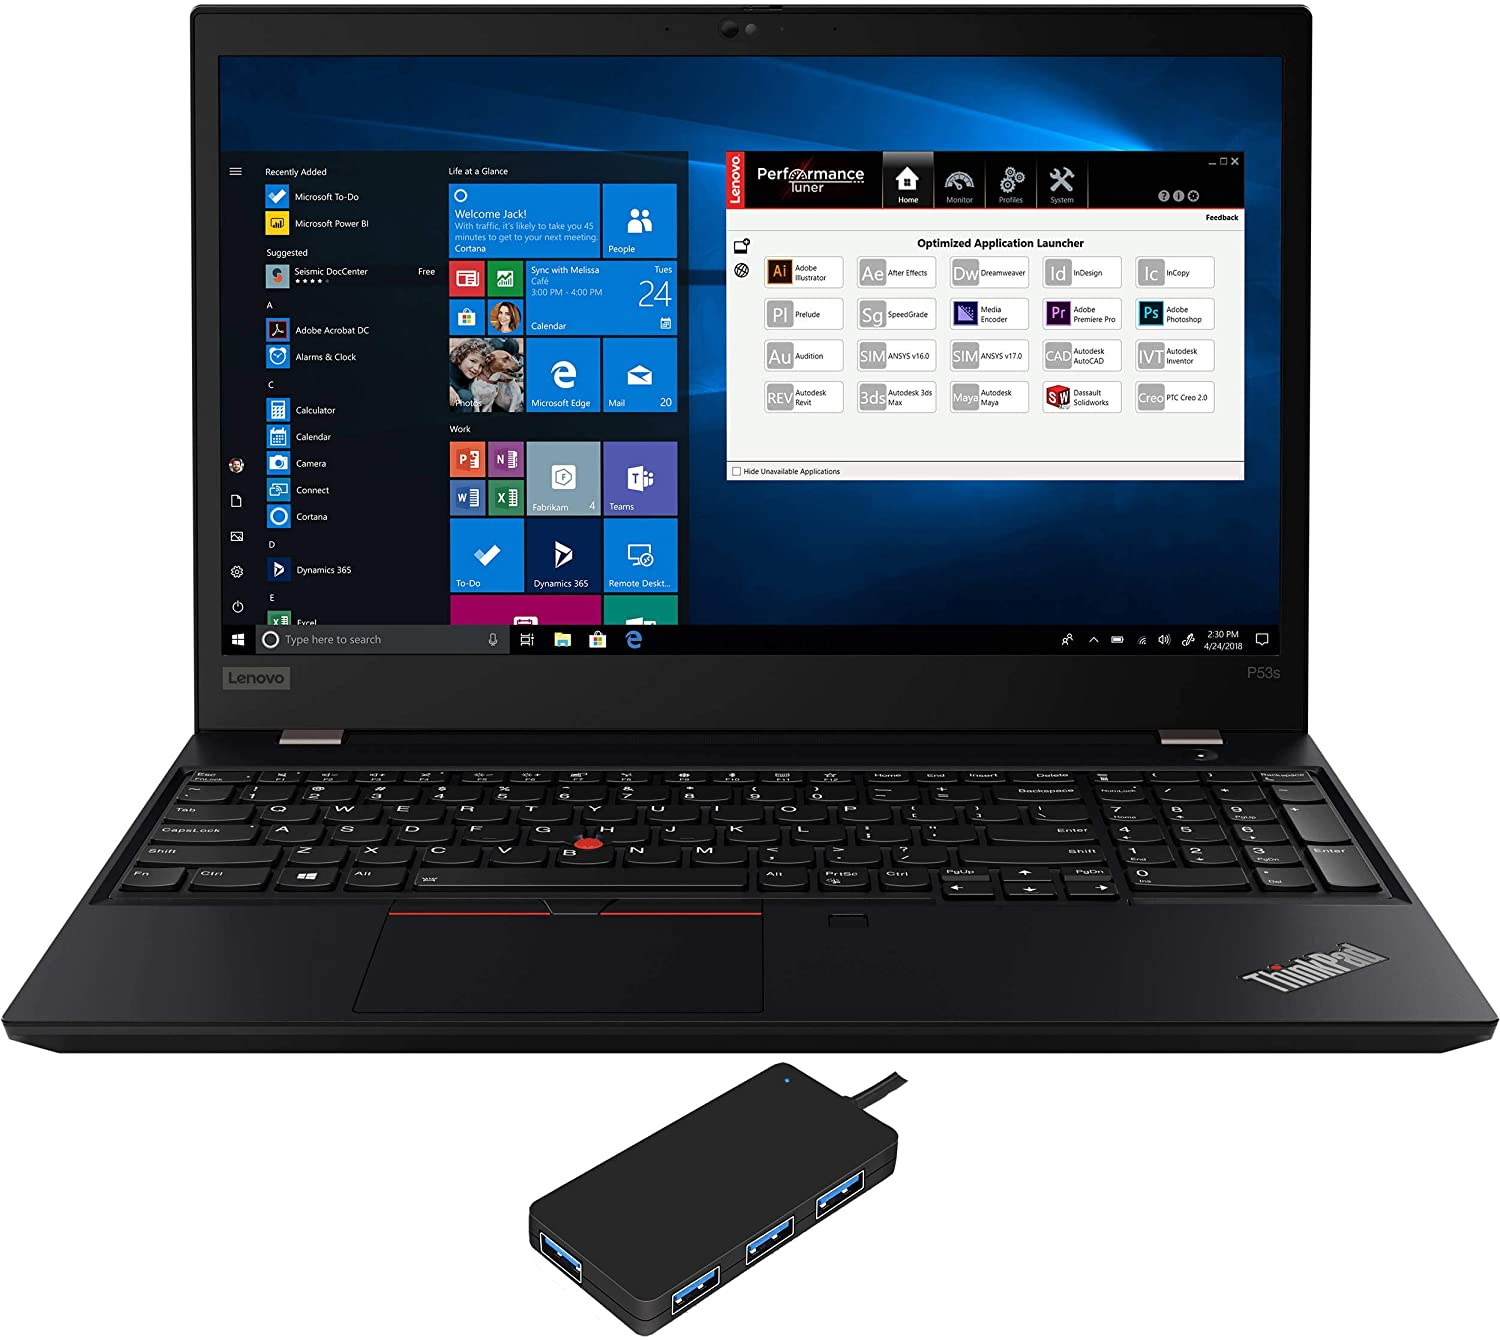 Lenovo ThinkPad P53s Workstation Laptop (Intel i7-8565U 4-Core, 16GB RAM, 2TB PCIe SSD, Quadro P520, 15.6